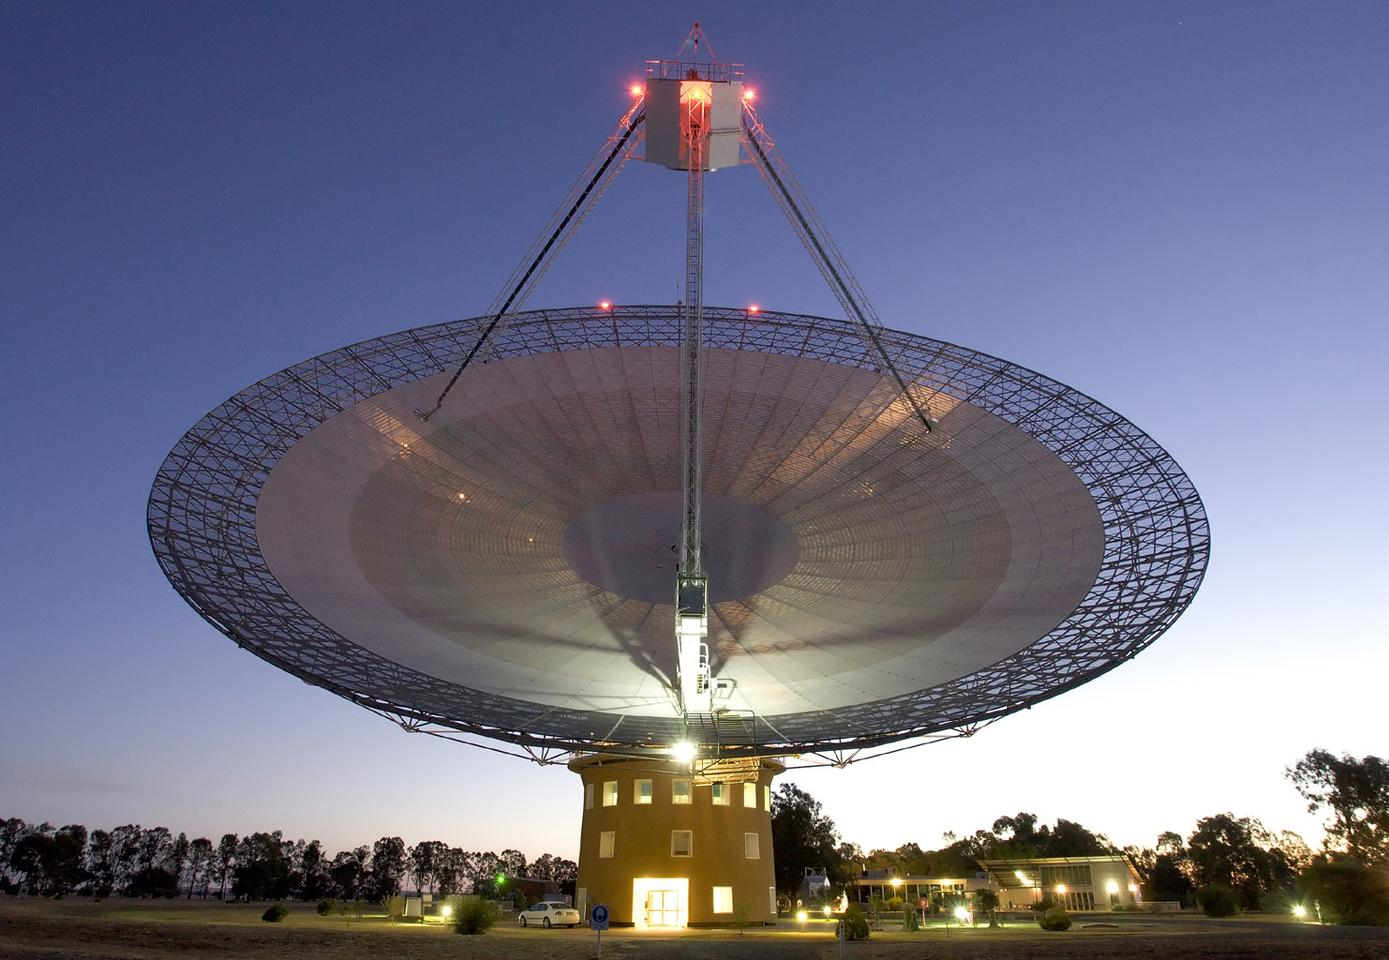 The Parkes Telescope located in Australia is just one of the assets that will be brought to bear in the ambitious new program